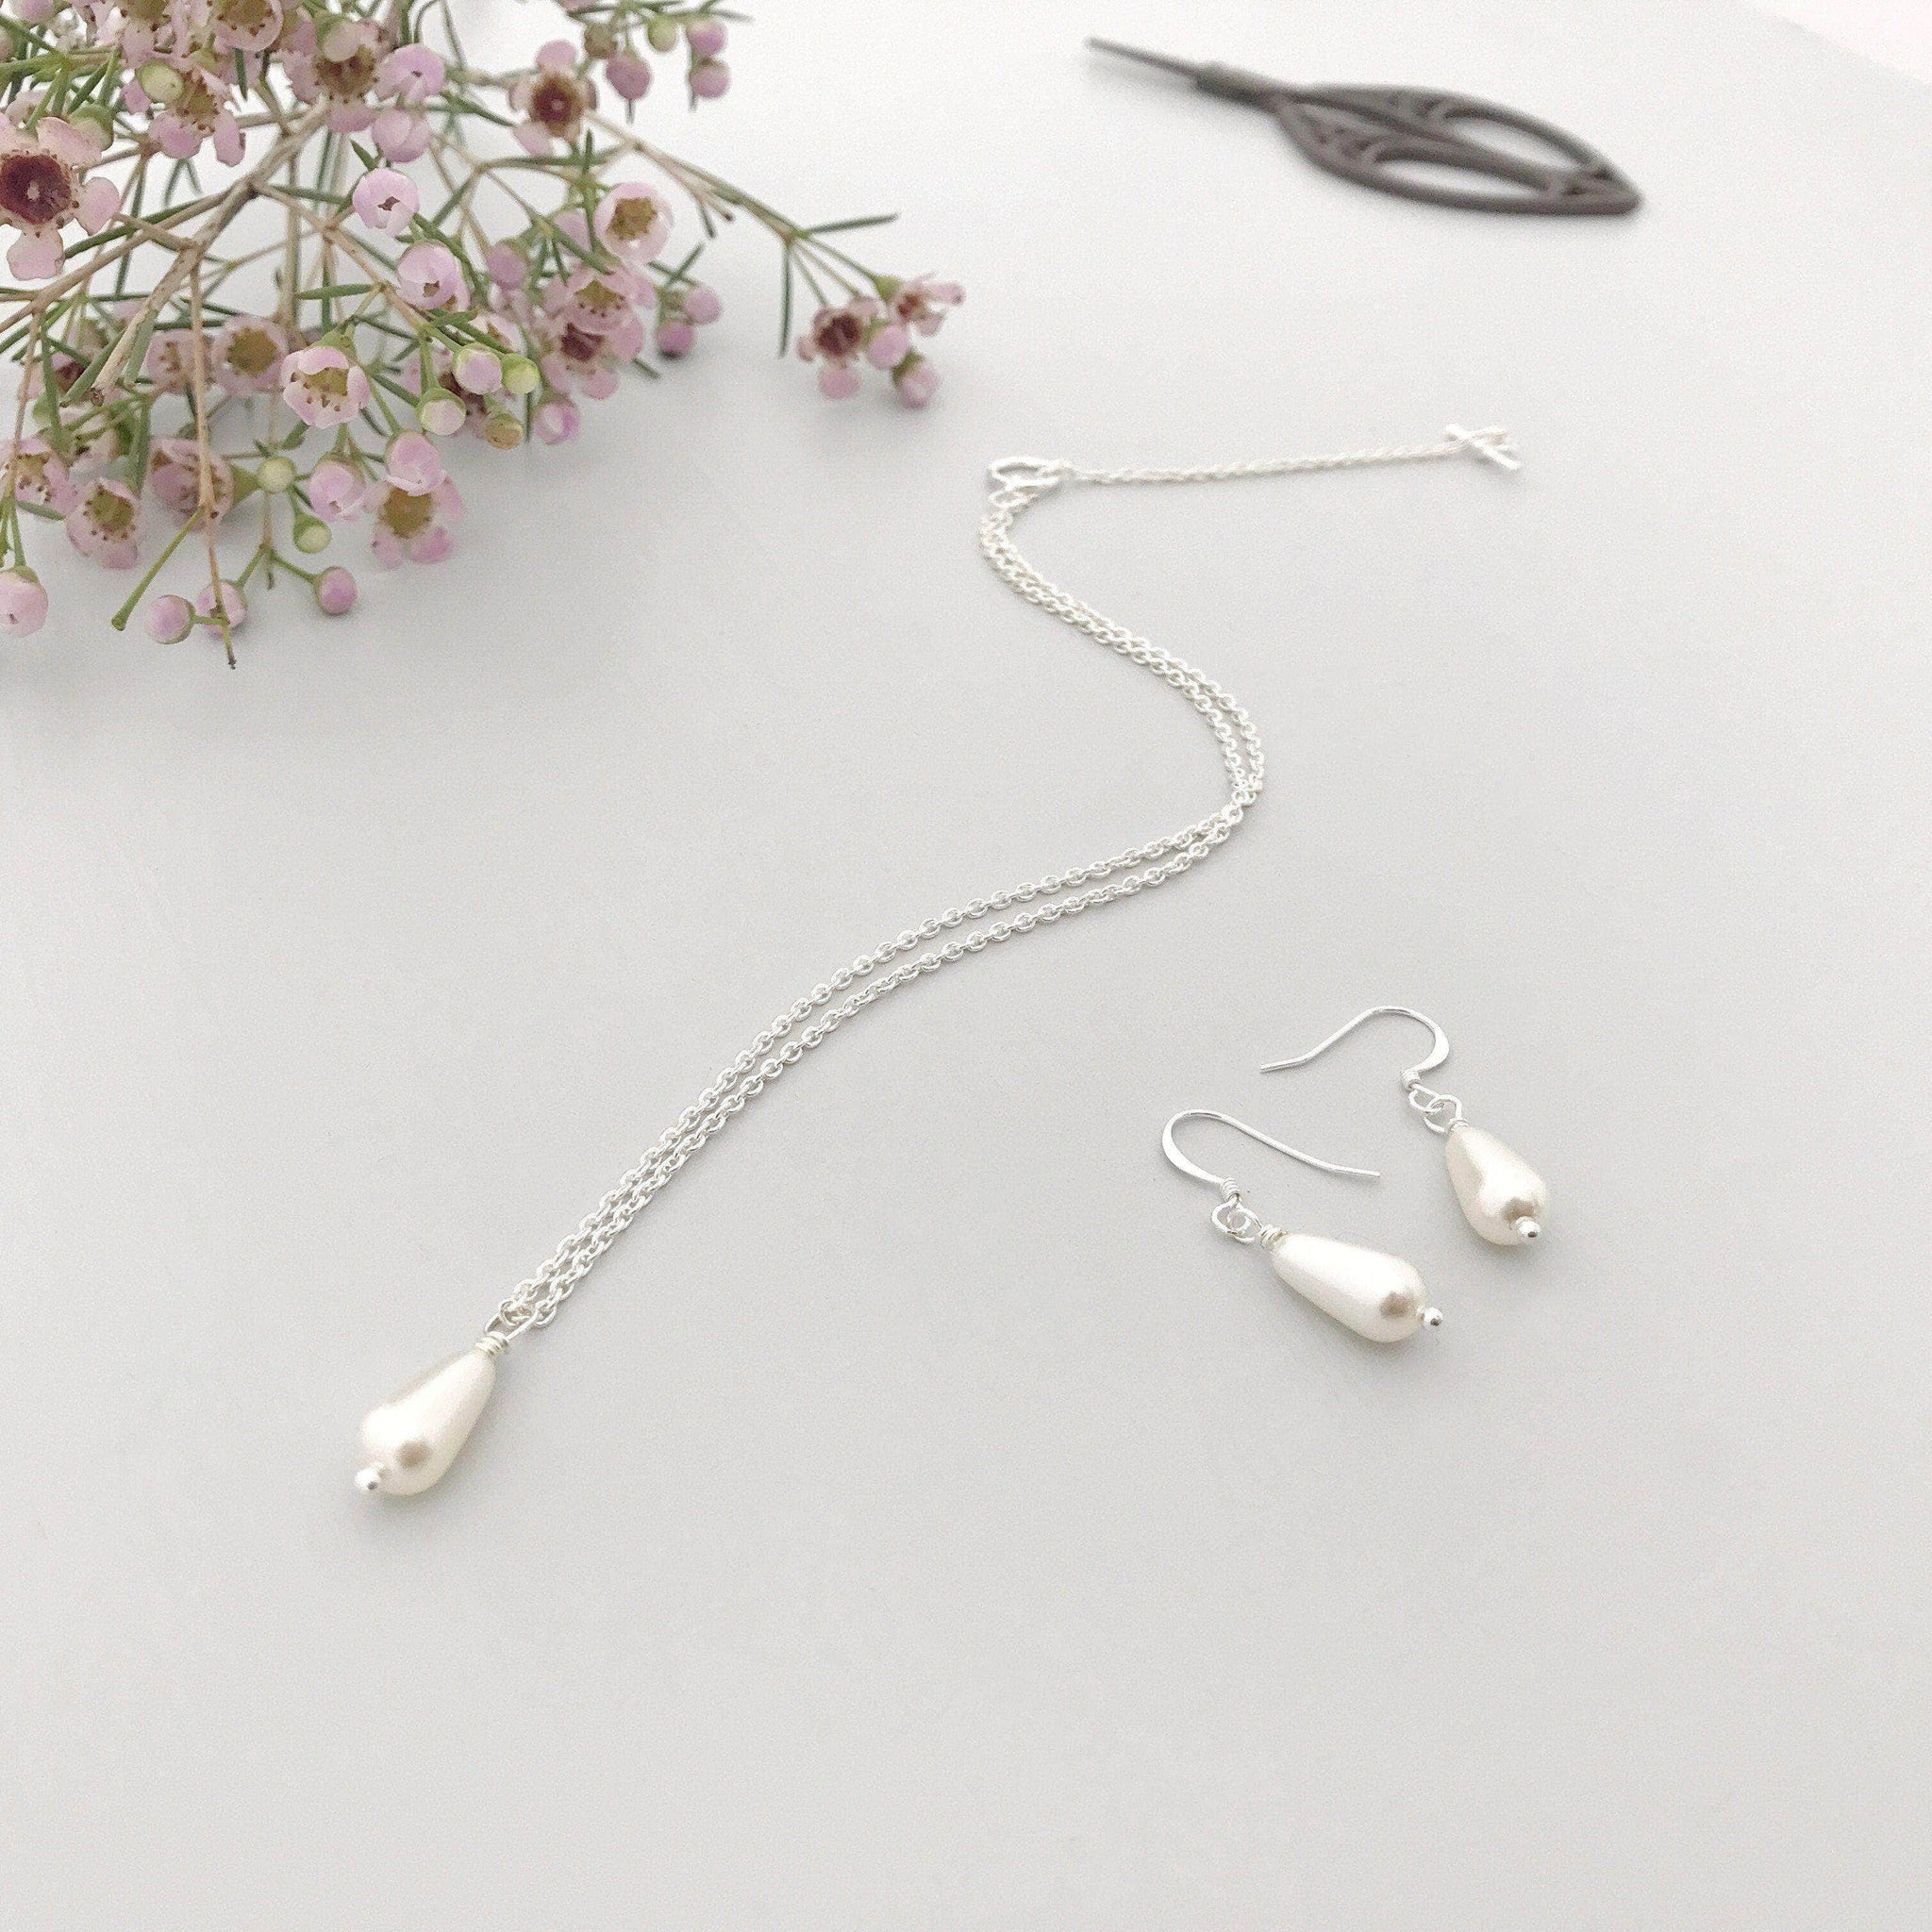 Pearl drop wedding necklace and earring set (different sizes available) - 'Hermie'